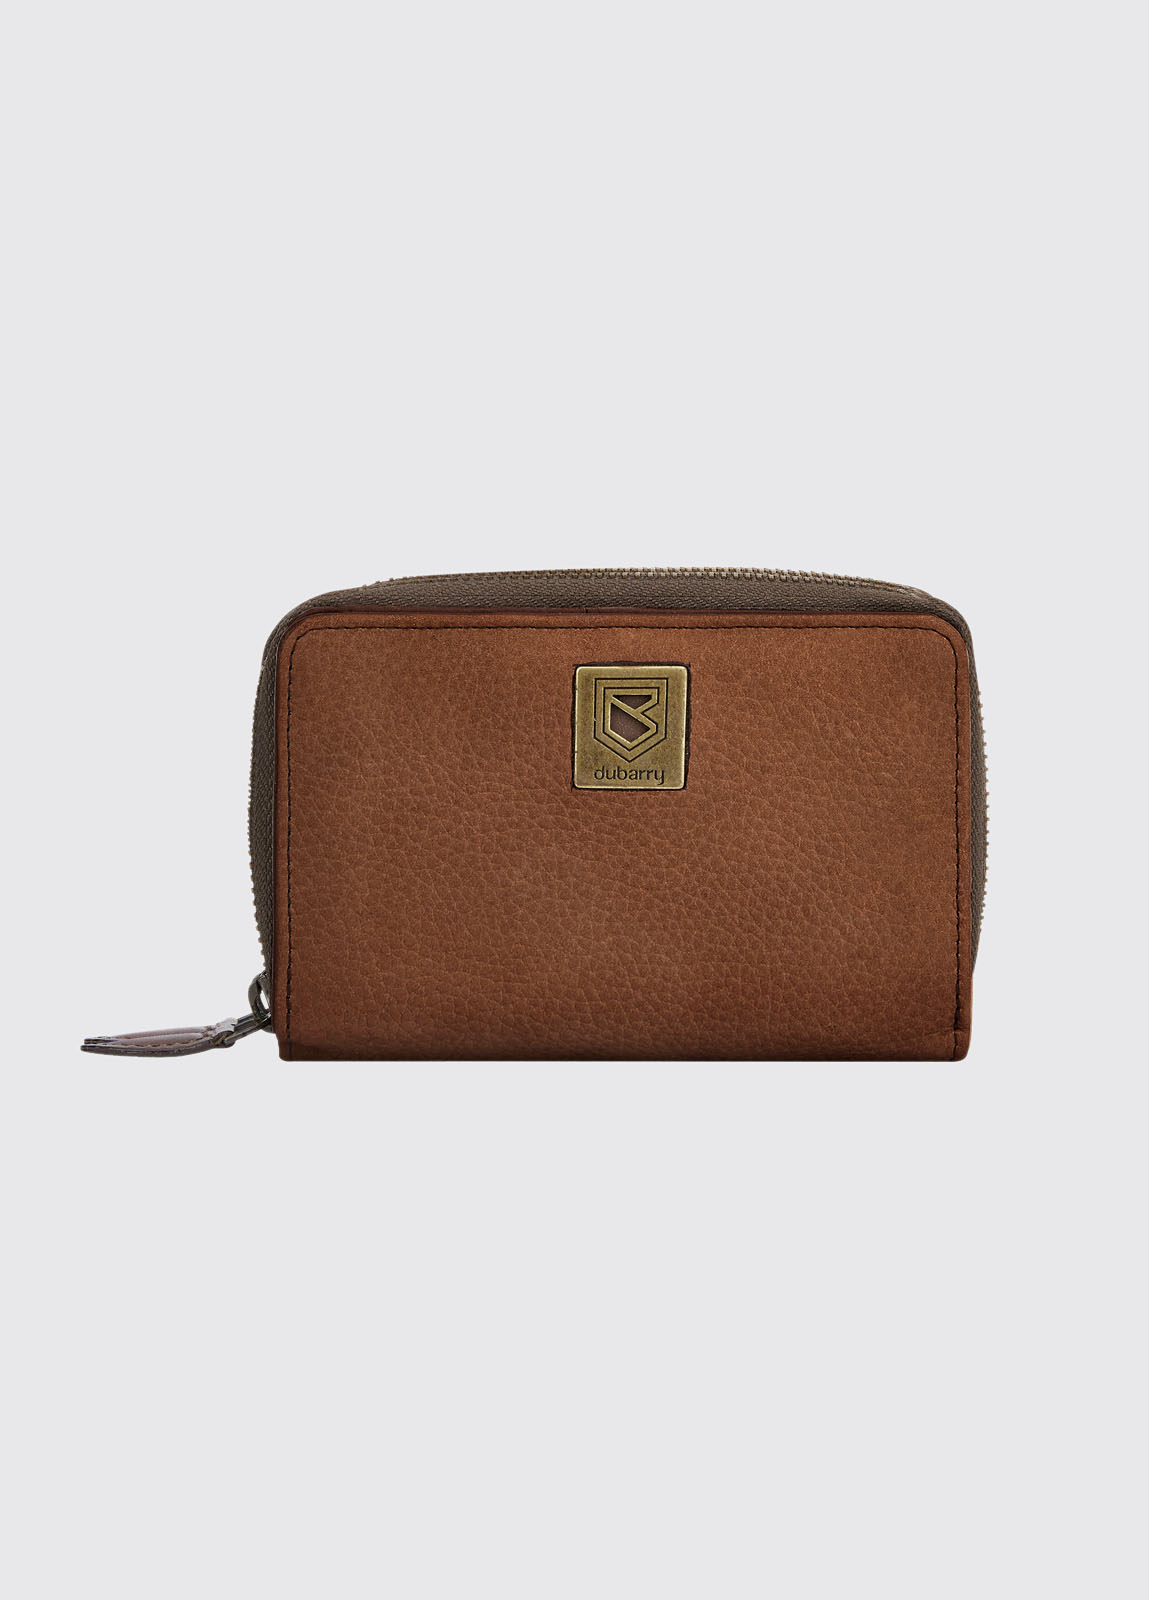 Enniskerry Leather Wallet - Walnut